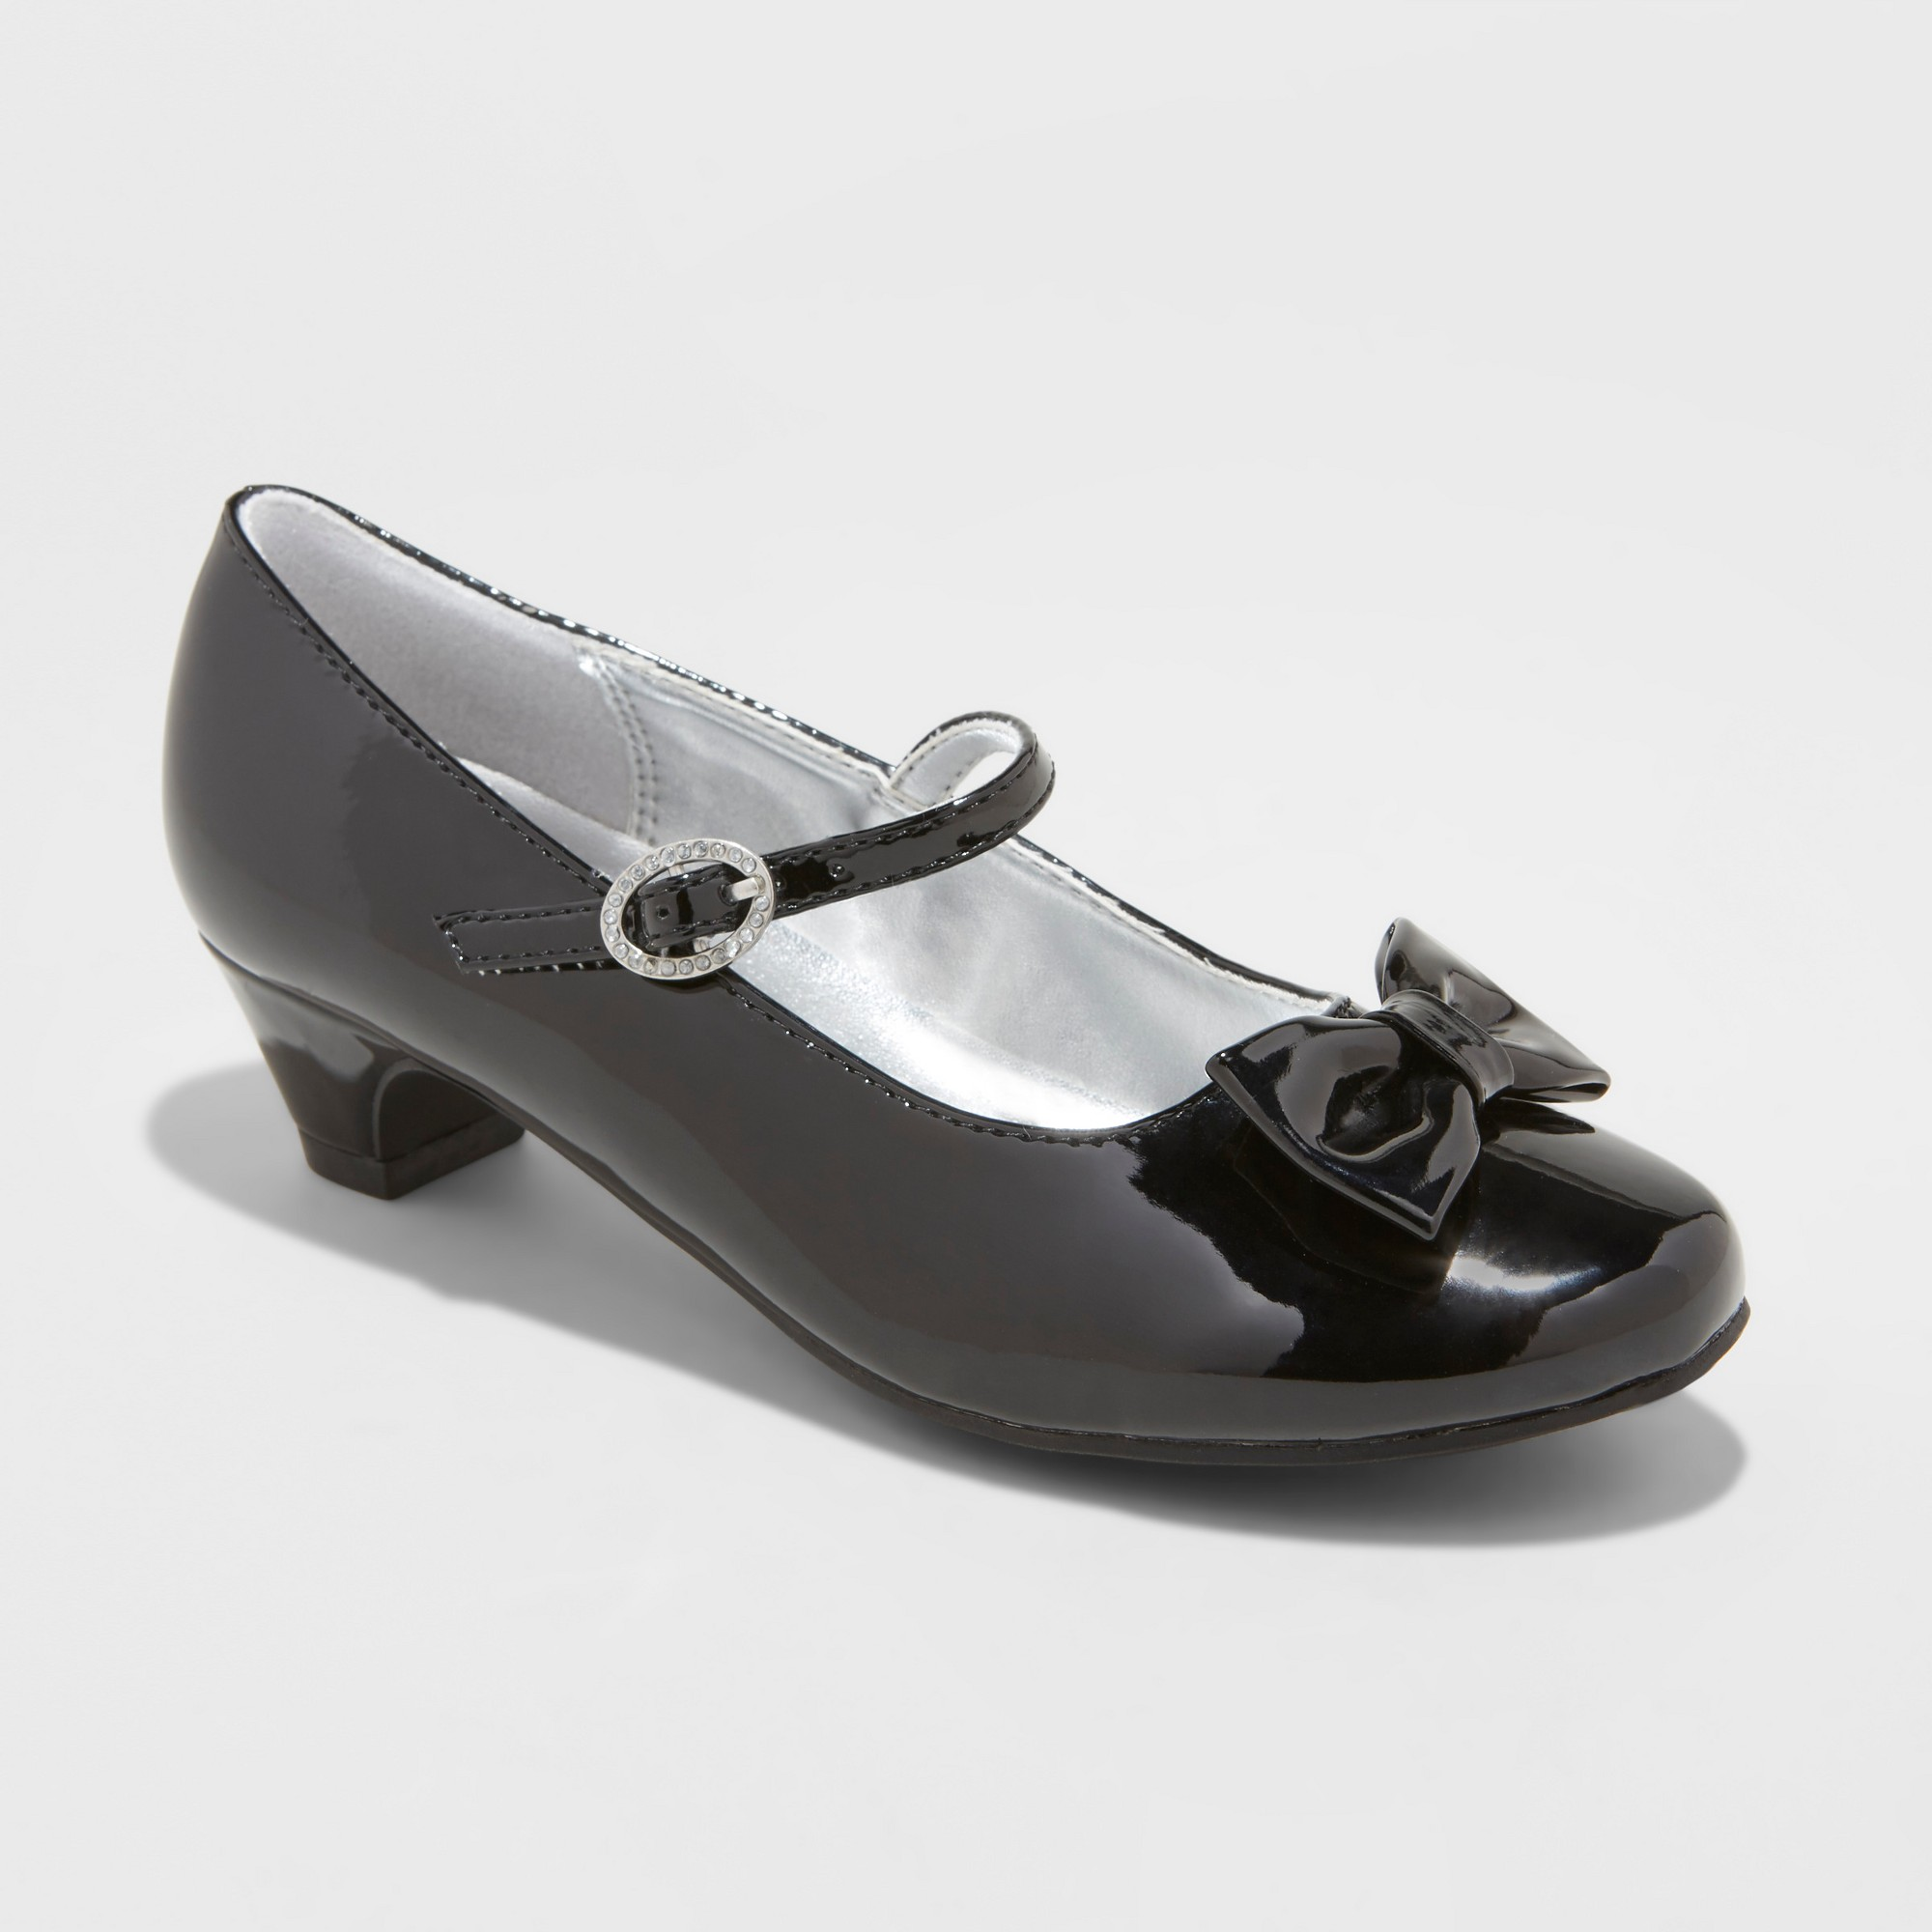 709b71648f5 Girls  Flowers by Nina Trevina Mary Jane Shoes - Silver 4